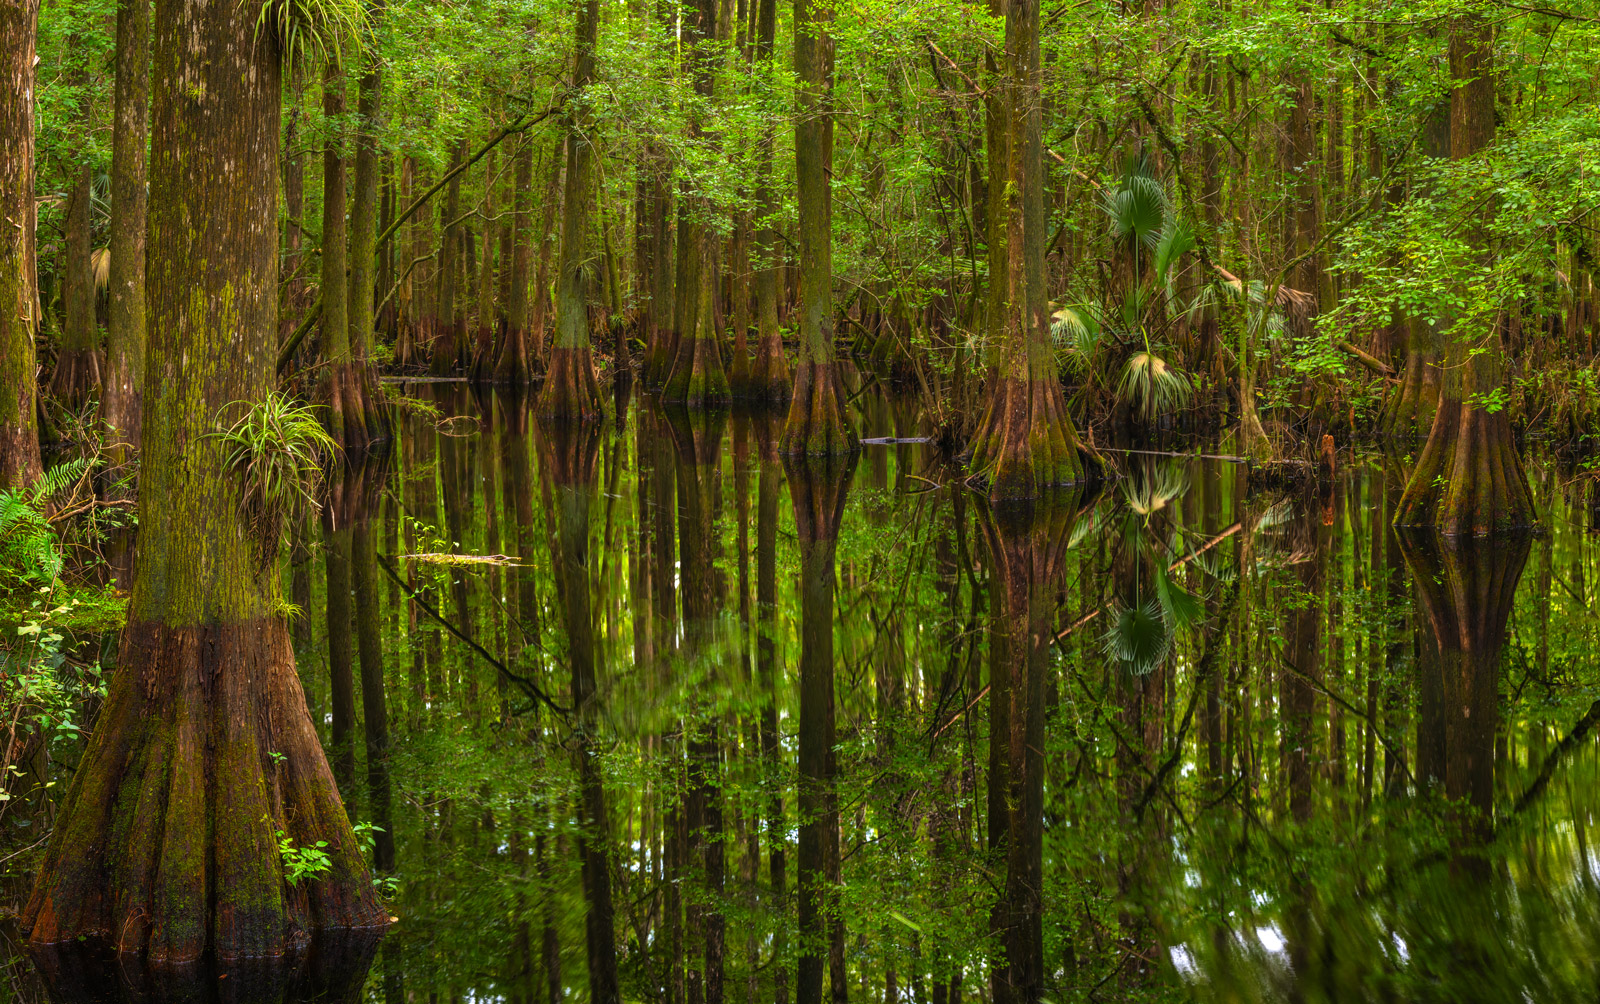 A Limited Edition, Fine Art photograph of a Cypress Swamp in Highlands Hammock State Park in Florida. Available as a Fine Art...